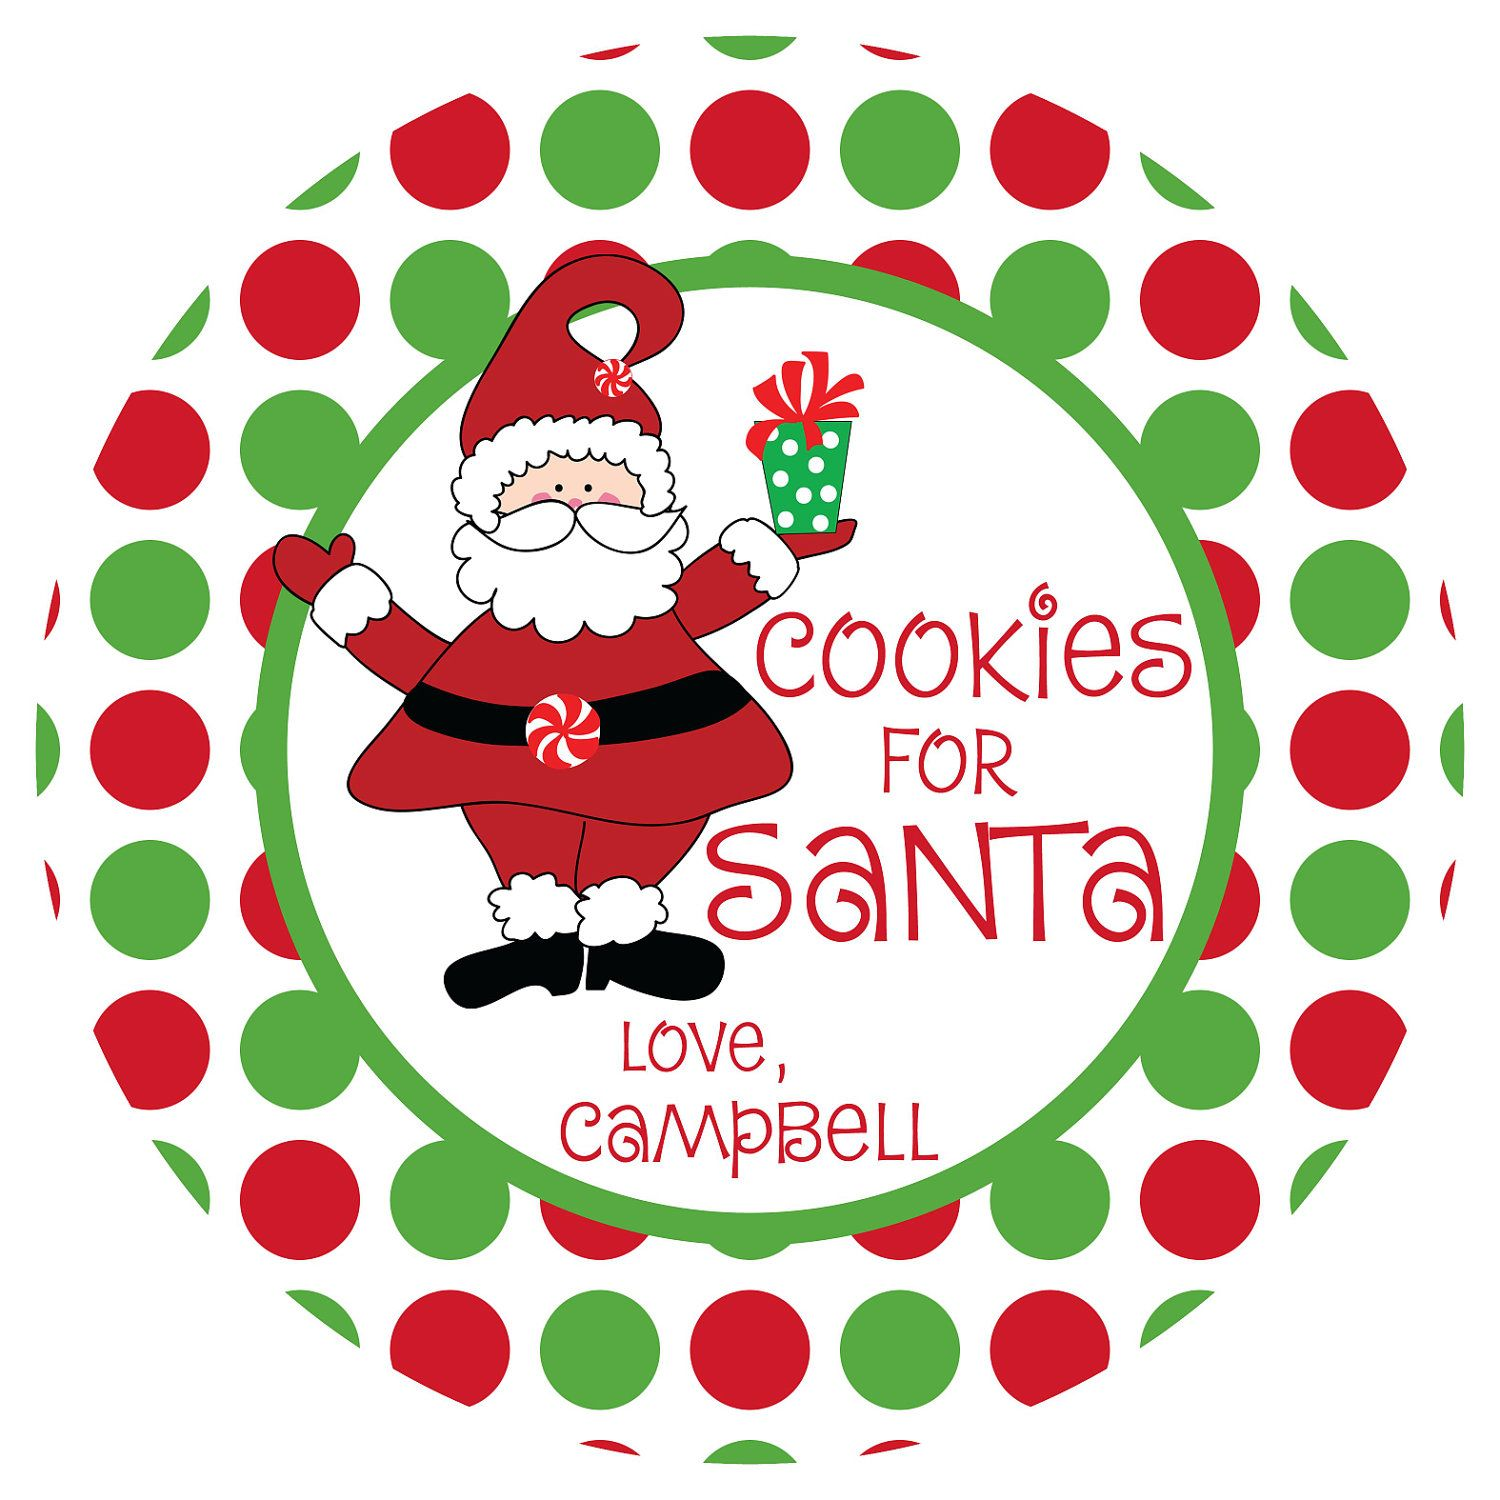 Cookies for Santa Plate - Personalized Melamine Plate - Personalized Christmas Plate. $20.00 via Etsy.  sc 1 st  Pinterest & Cookies for Santa Plate - Personalized Melamine Plate - Personalized ...